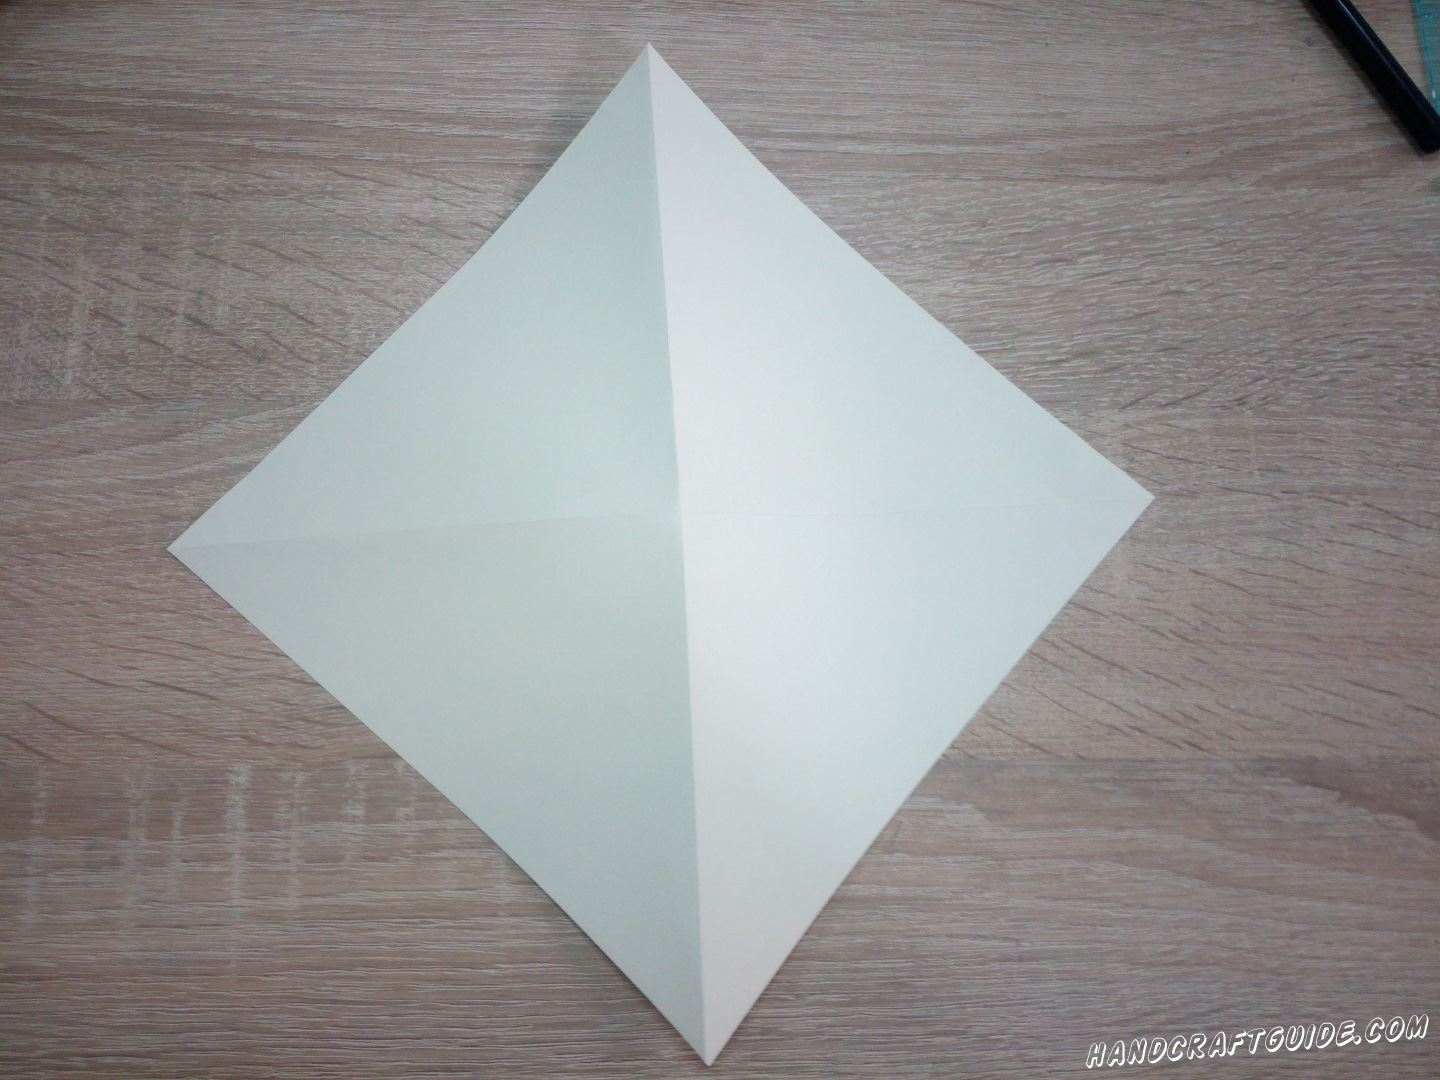 Cut a square sheet out of colored paper. Fold it into 4 parts and unfold it as shown in the photo.